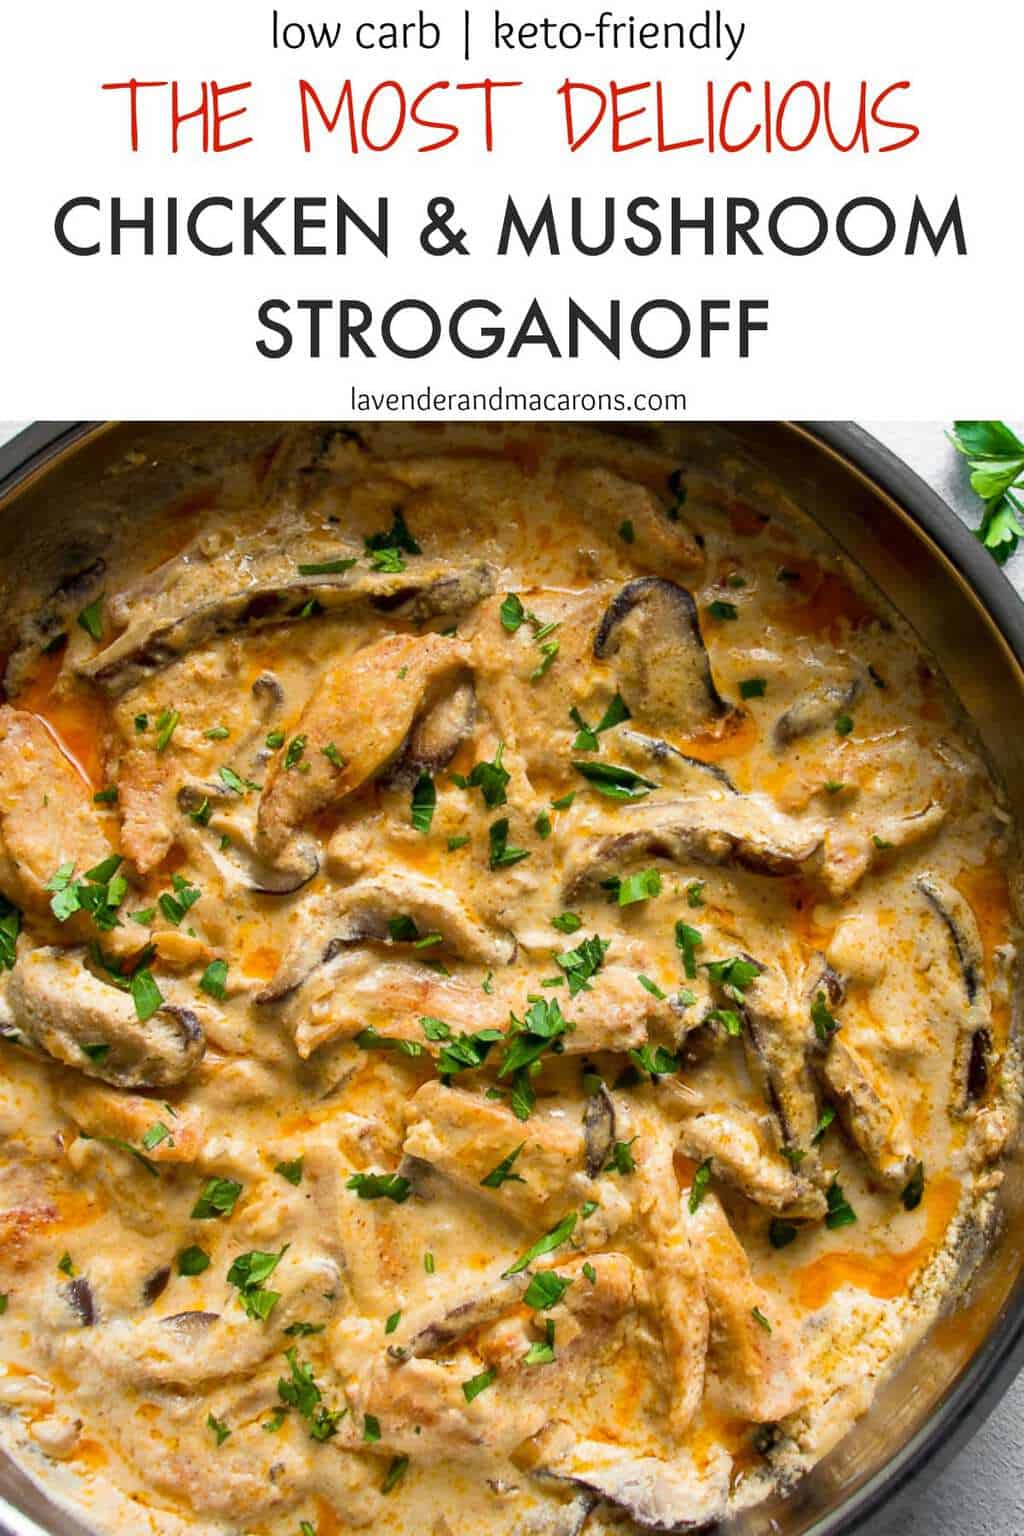 The Most Delicious Chicken Stroganoff With Mushrooms